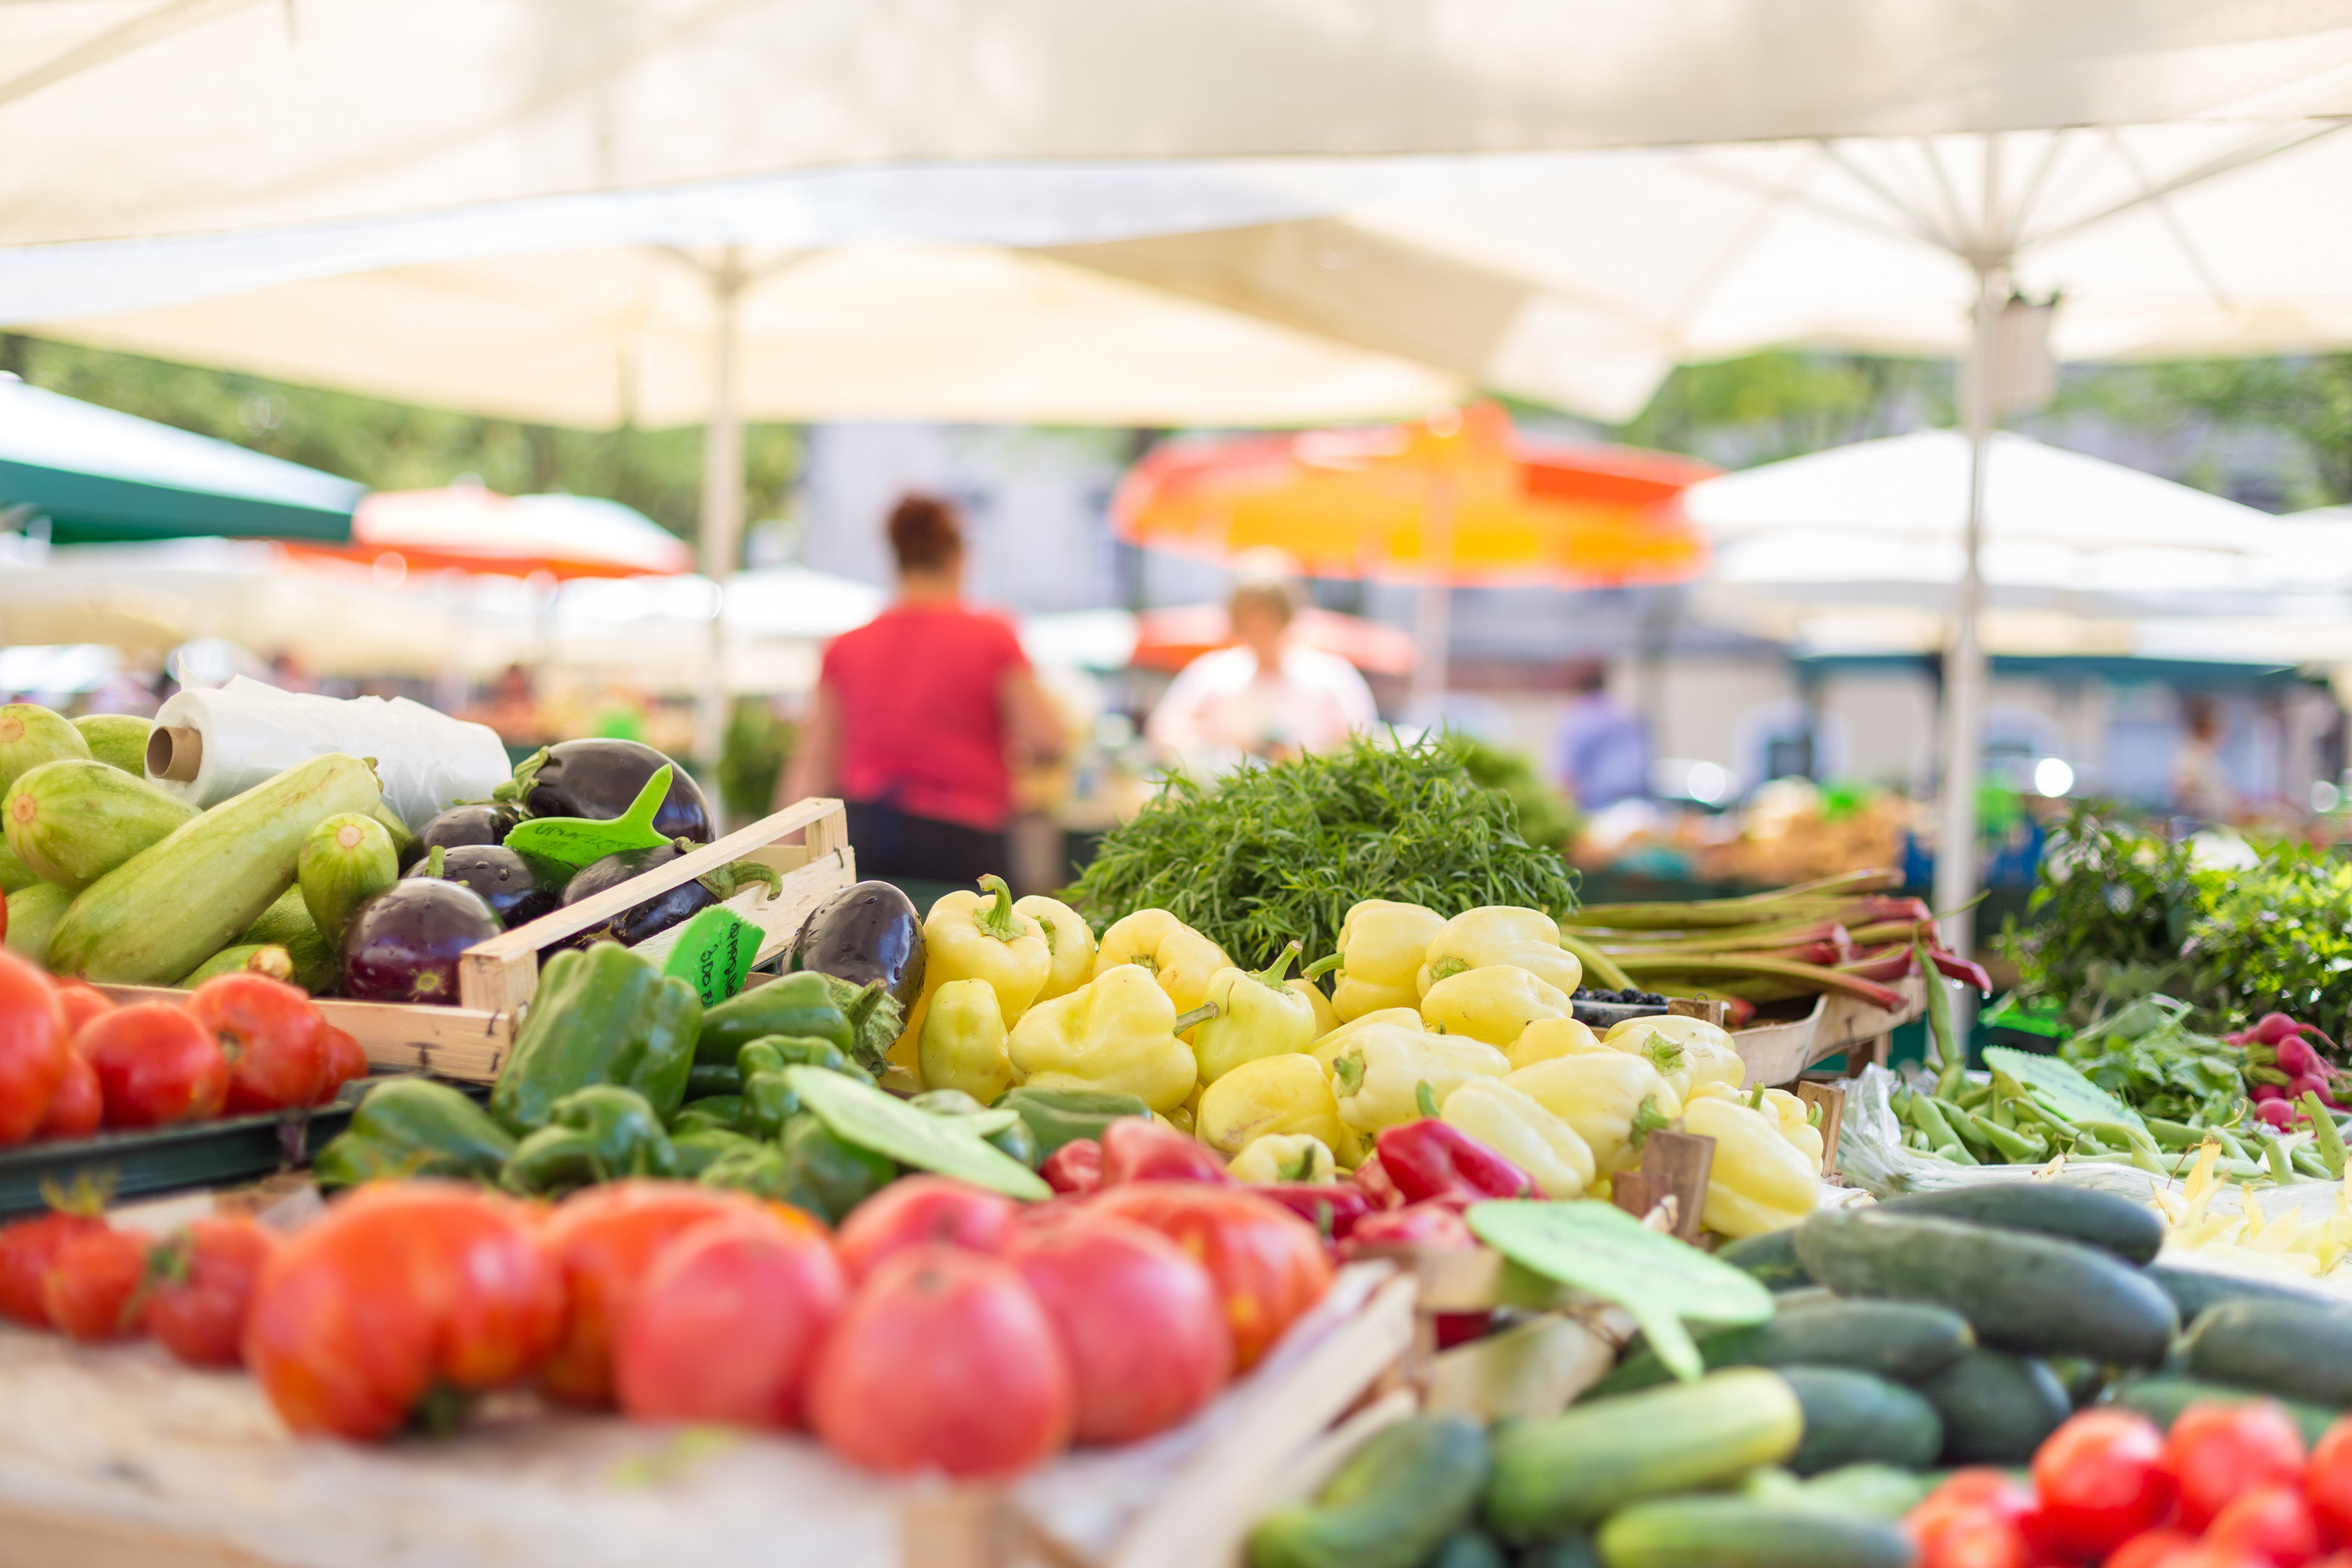 Food + Drink food local food dish vegetable meal public space City human settlement floristry market produce fruit lunch buffet sense brunch hors d oeuvre fresh